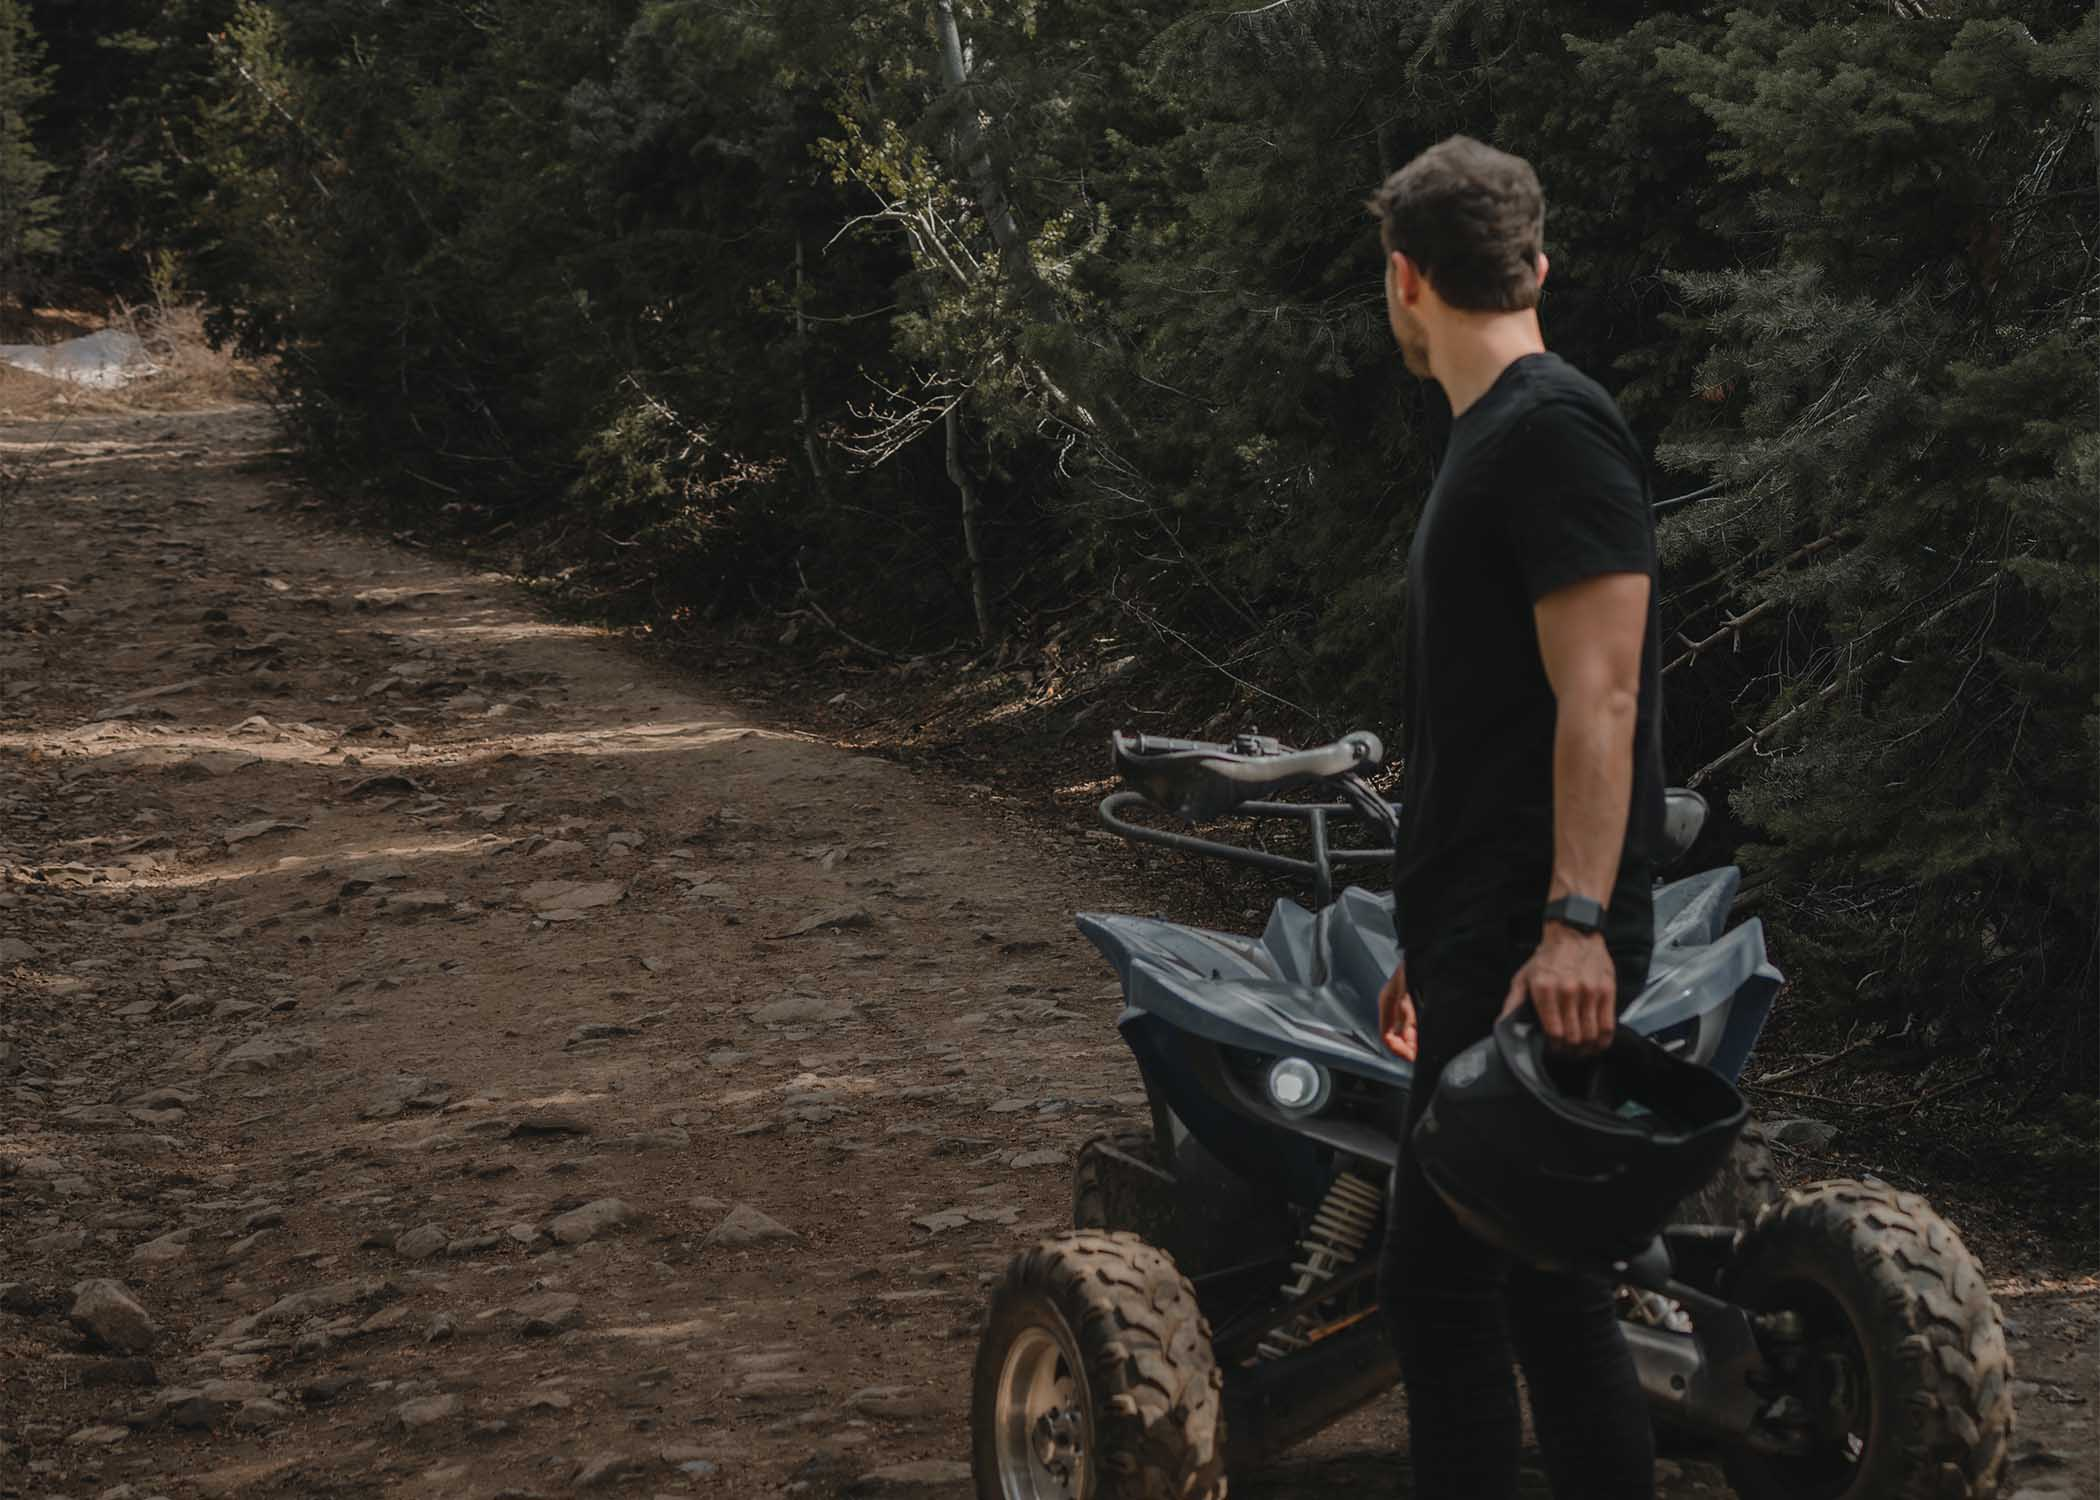 ATV rider looking back on a dirt road